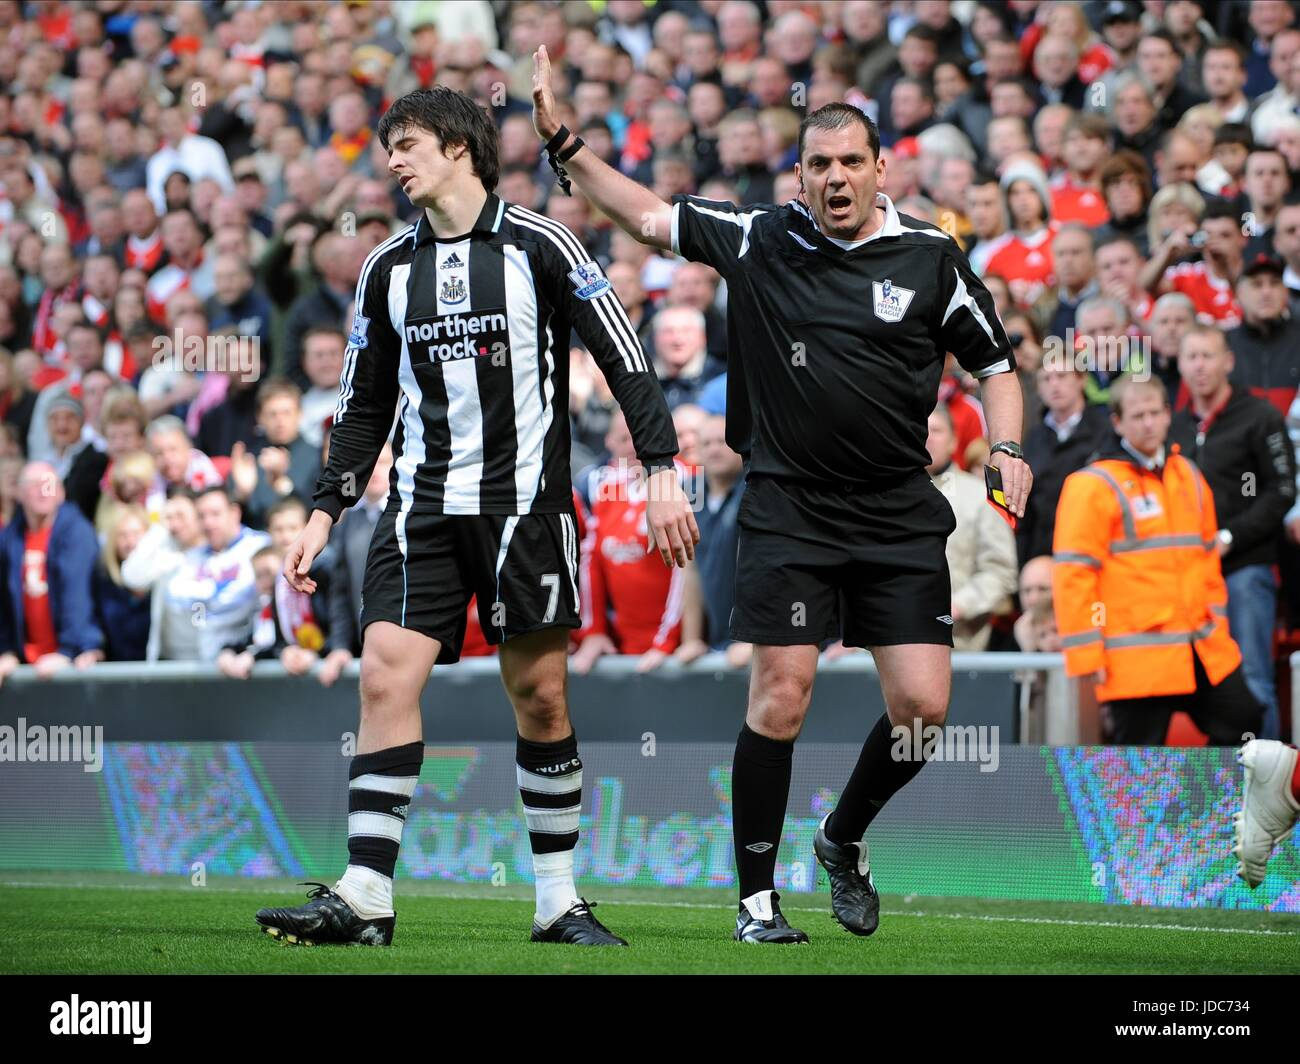 JOEY BARTON IS SENT OFF AFTER LIVERPOOL V NEWCASTLE ANFIELD LIVERPOOL ENGLAND 03 May 2009 - Stock Image